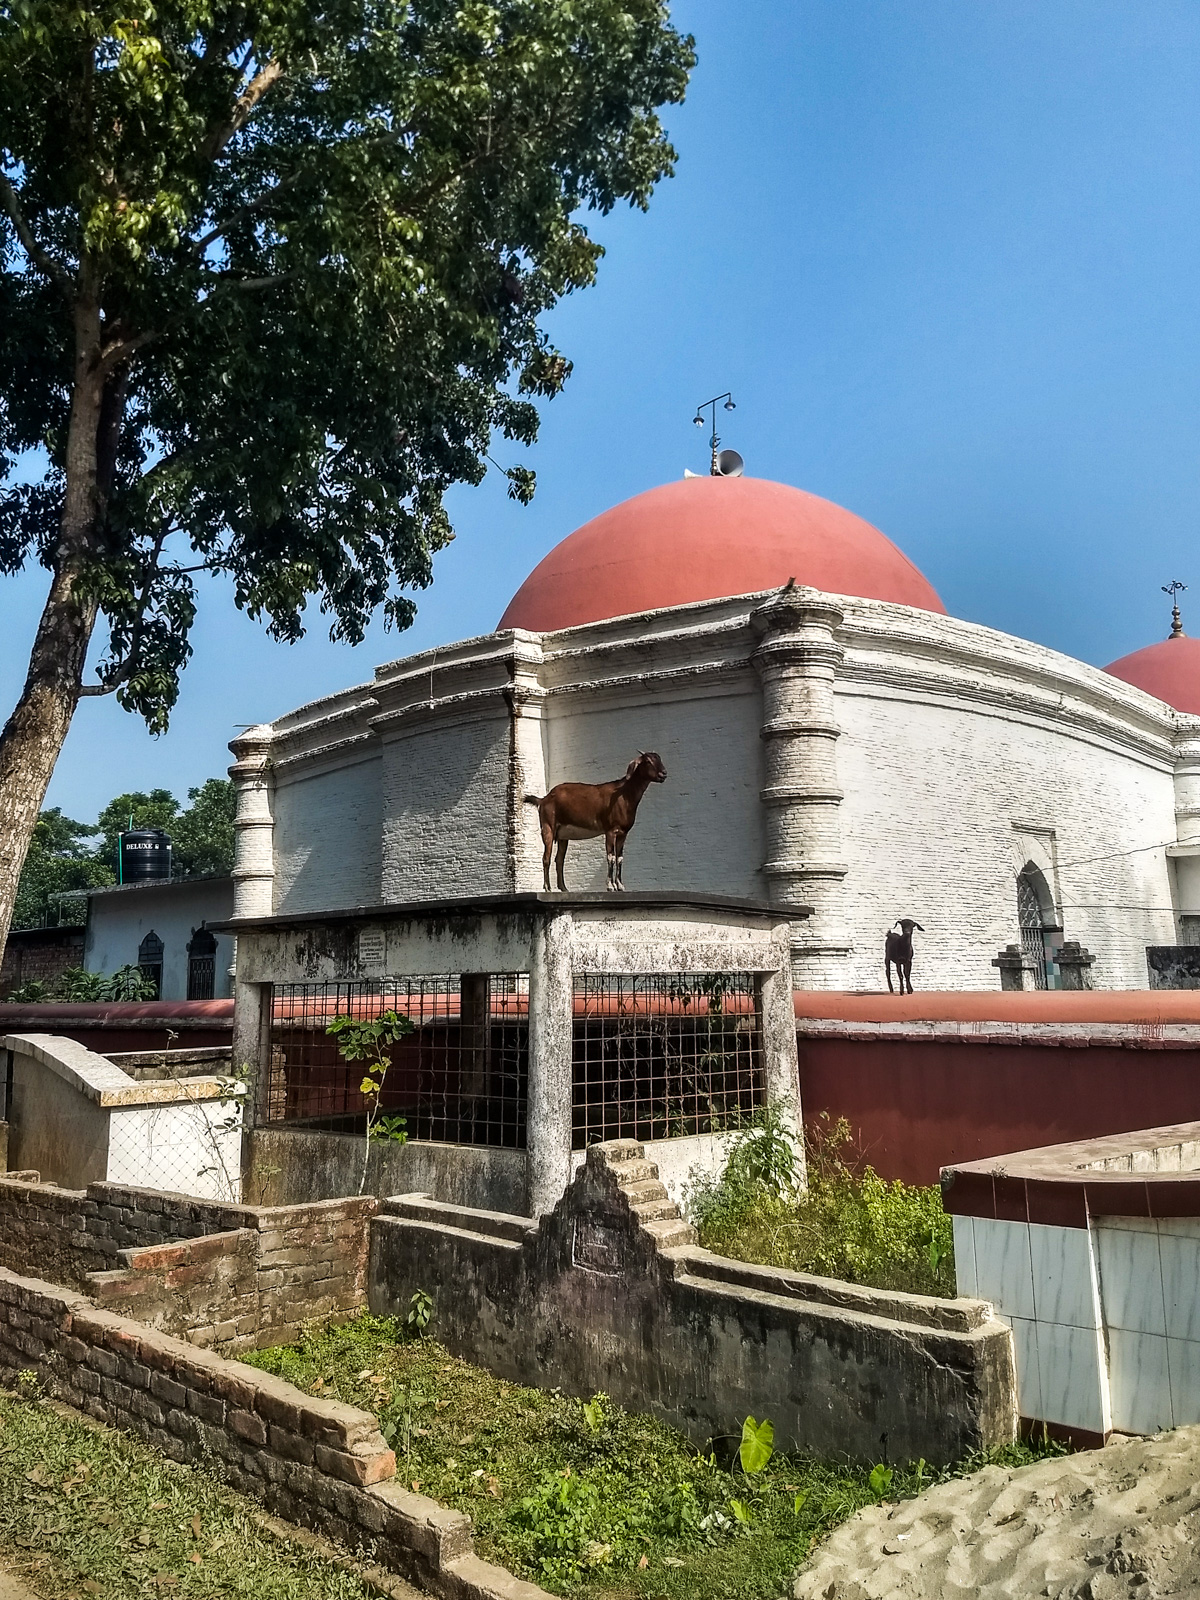 How to get from Khulna to Bagerhat by bus - Goat posing in front of tomb of Khan Jahan Ali - Lost With Purpose travel blog